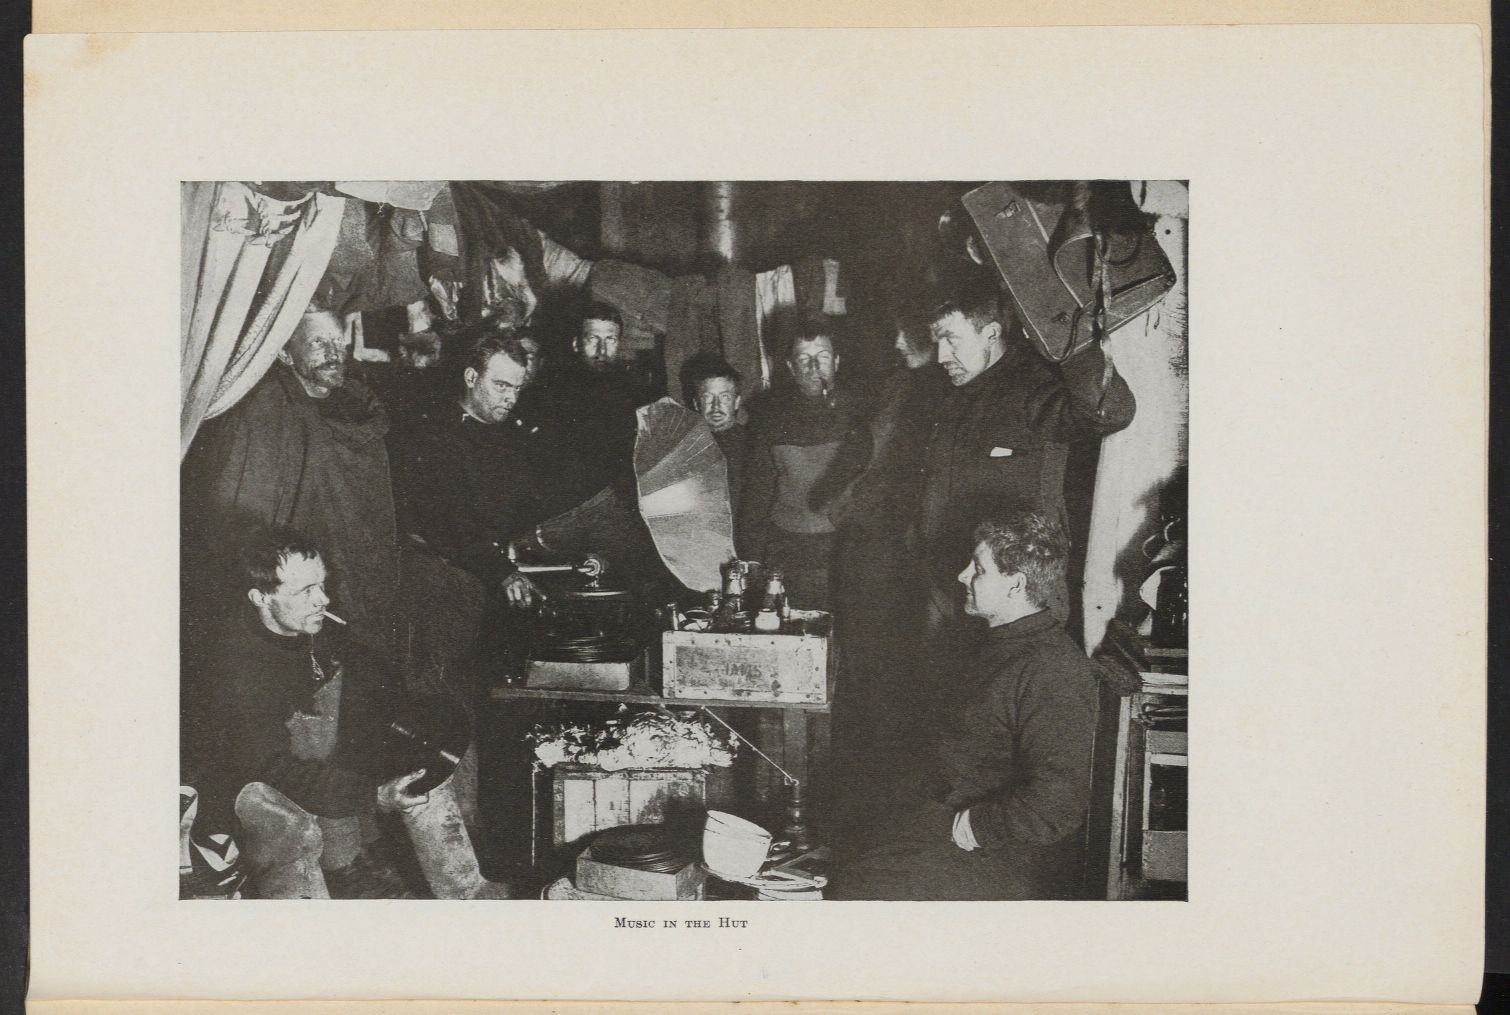 Shackleton, Ernest Henry. The heart of the Antarctic :being the story of the British Antarctic Expedition 1907-1909. Widener Library, Geog 6009.07